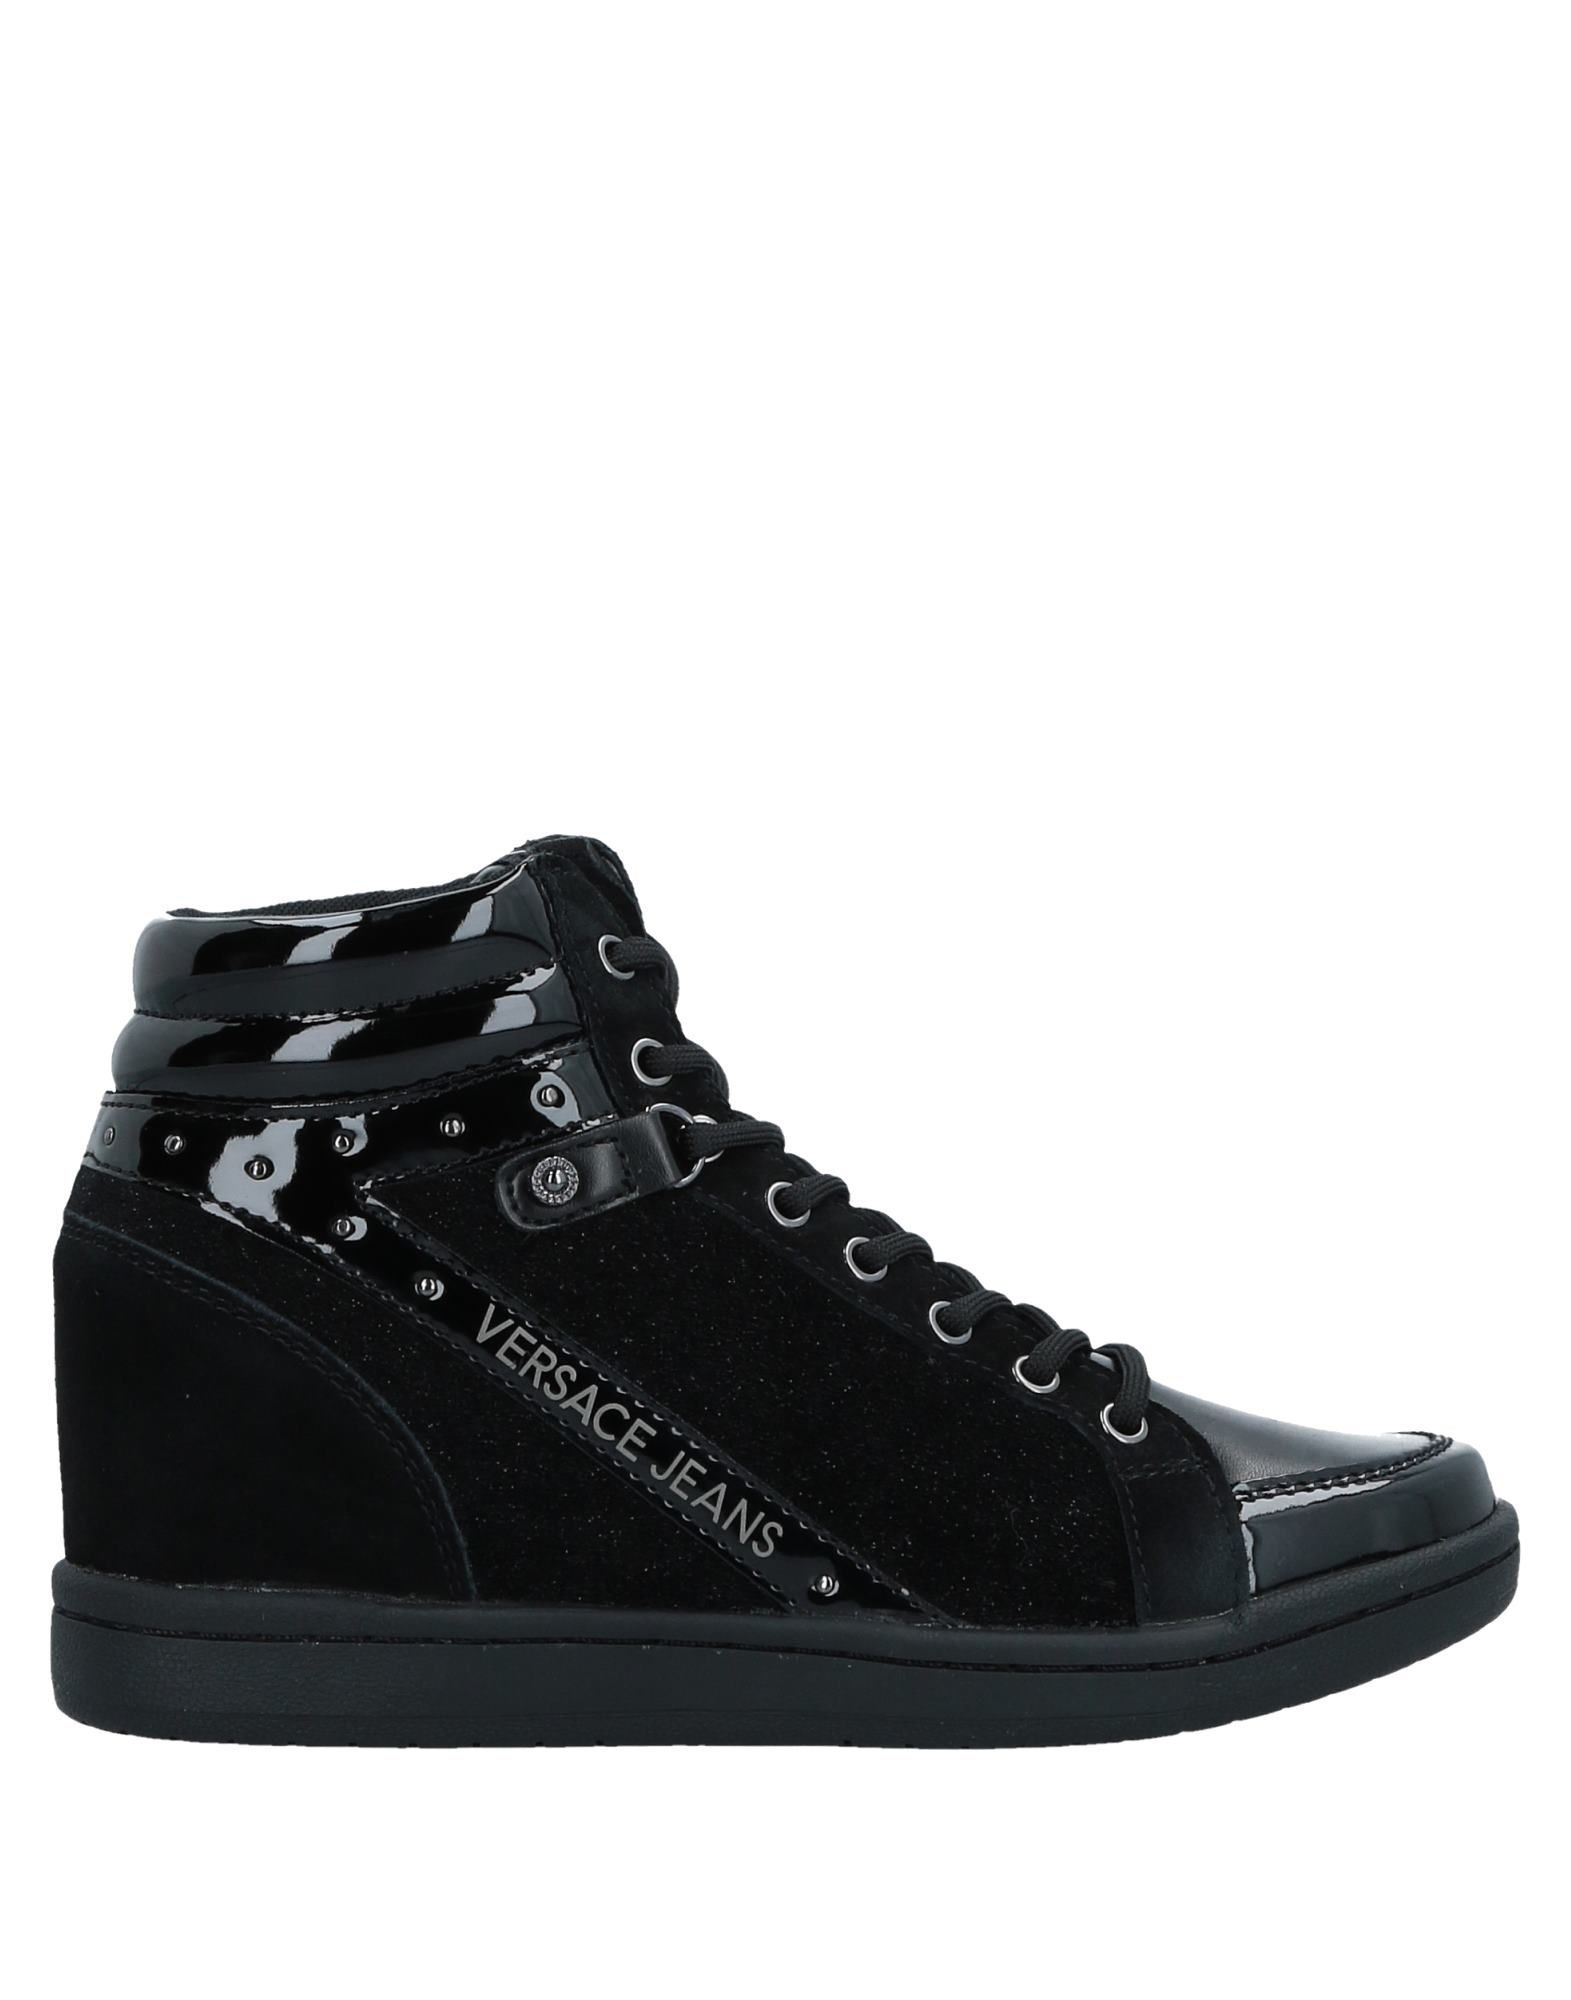 Zapatillas Jeans Versace Jeans Mujer - Zapatillas Versace Jeans Zapatillas  Negro 93435e